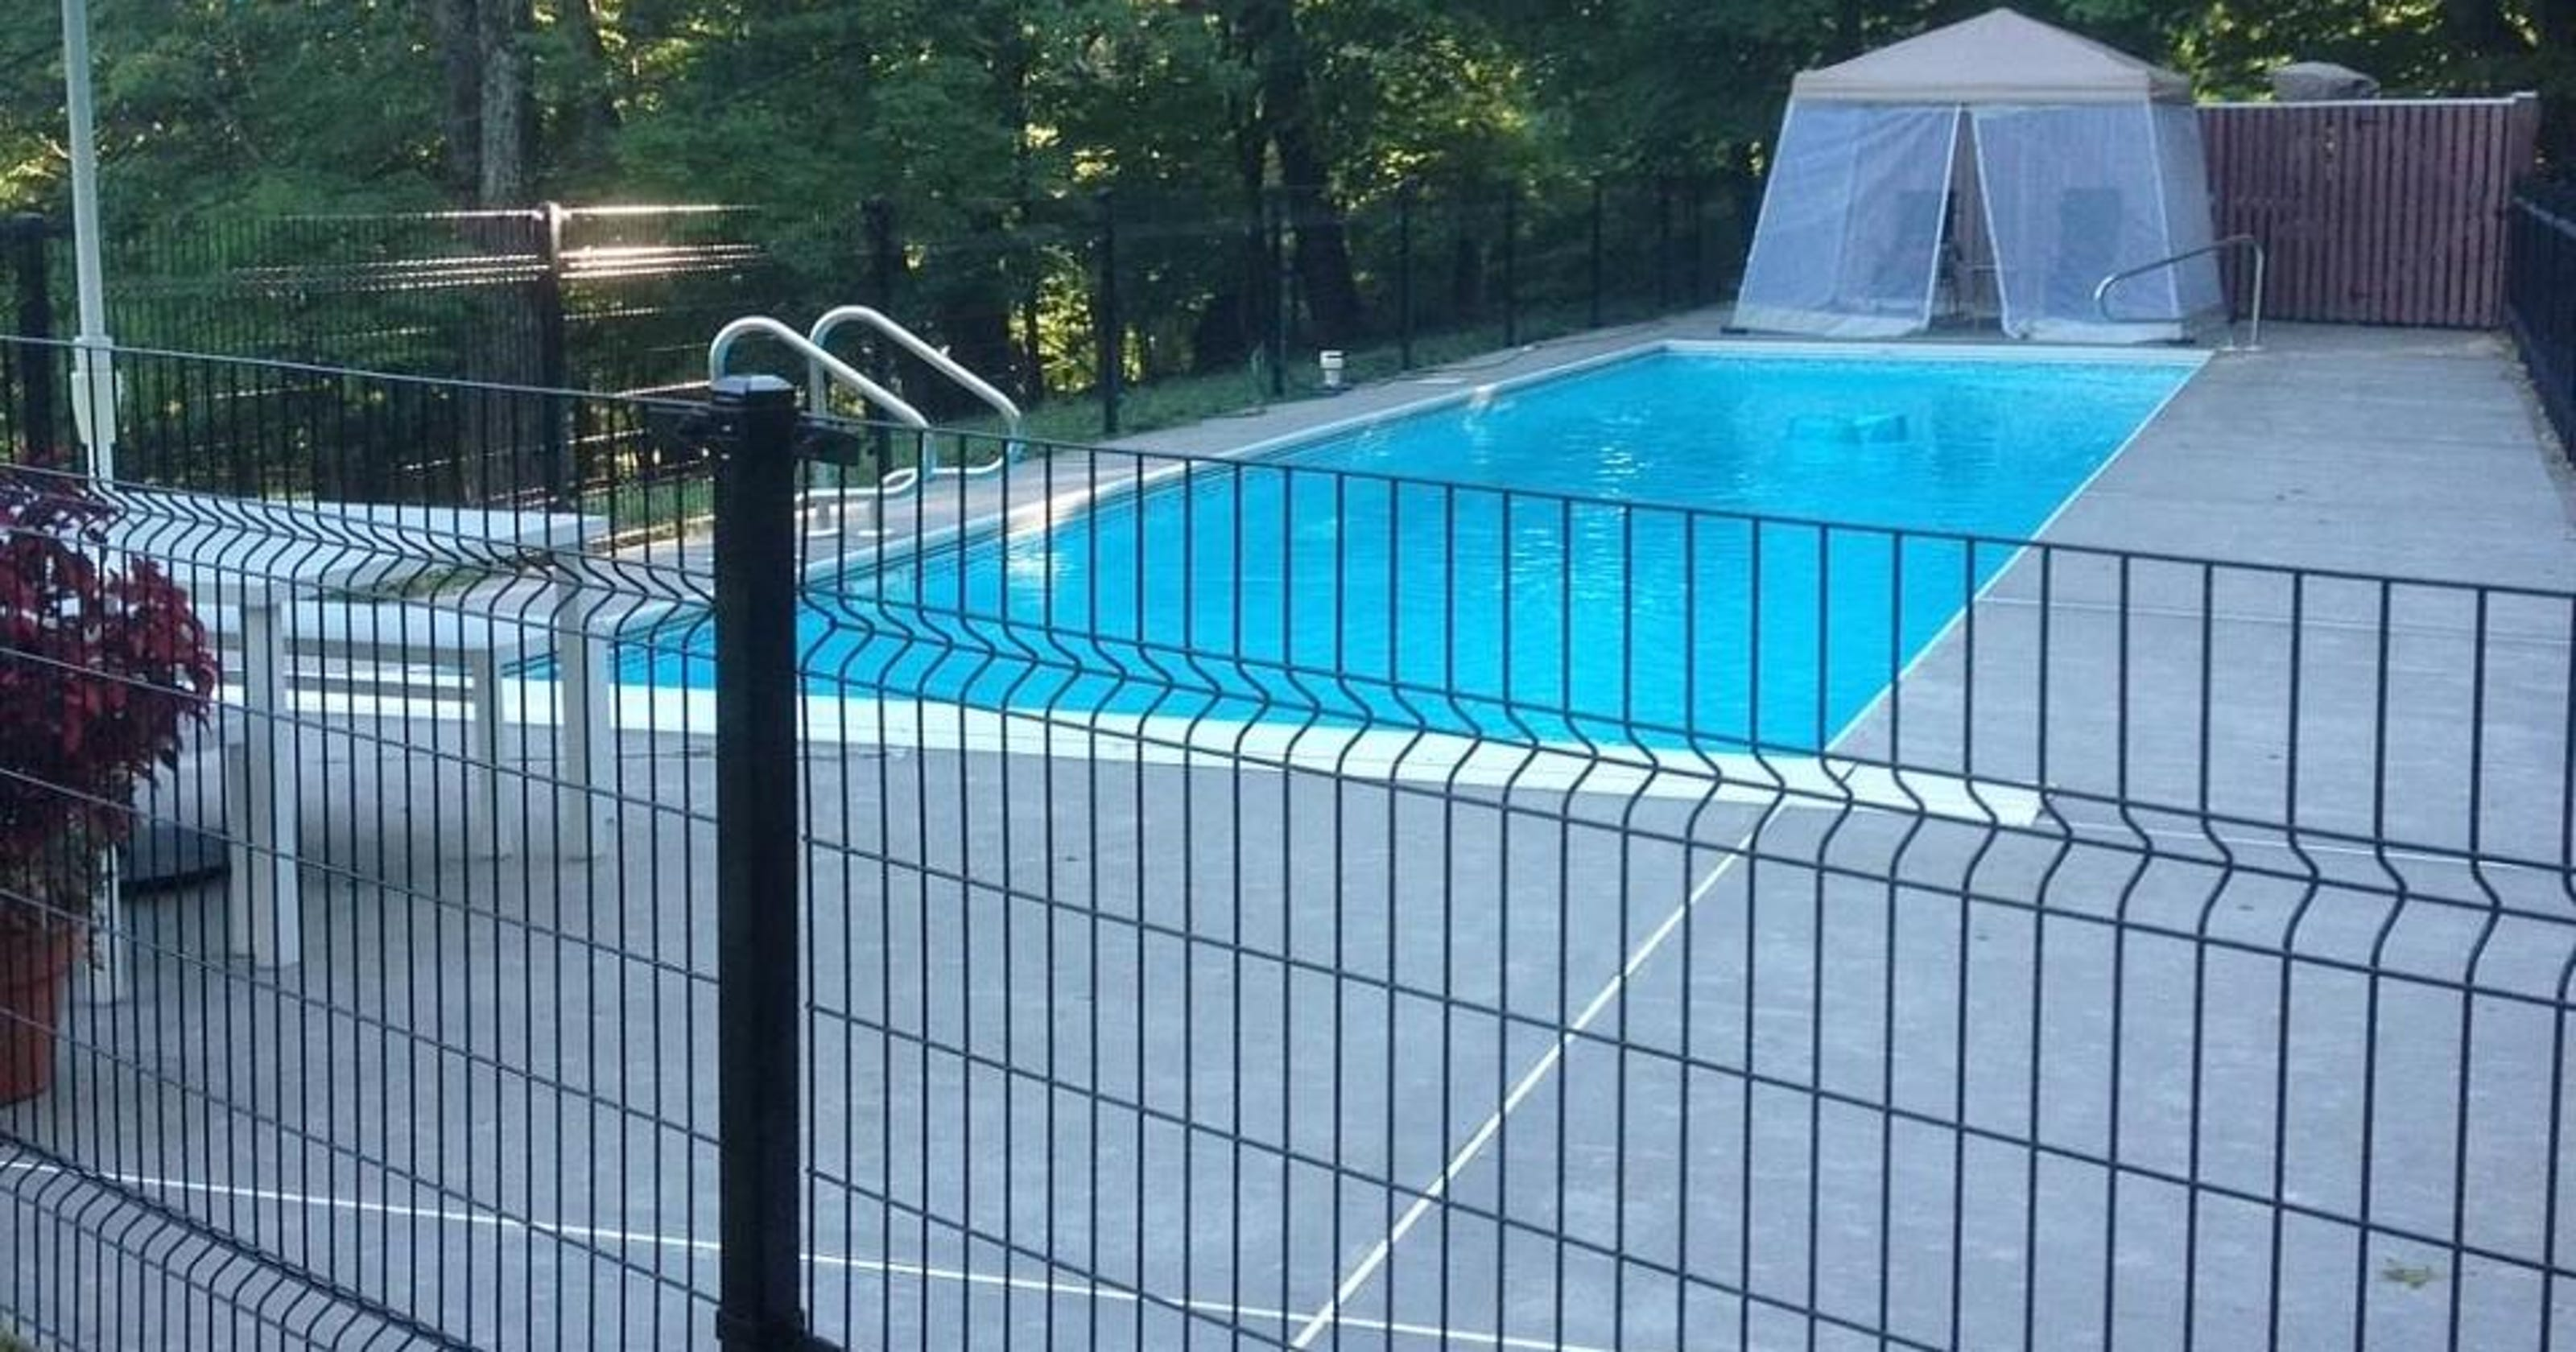 Eco friendly swimming pools designed for conservation - Public swimming pools in poughkeepsie ny ...